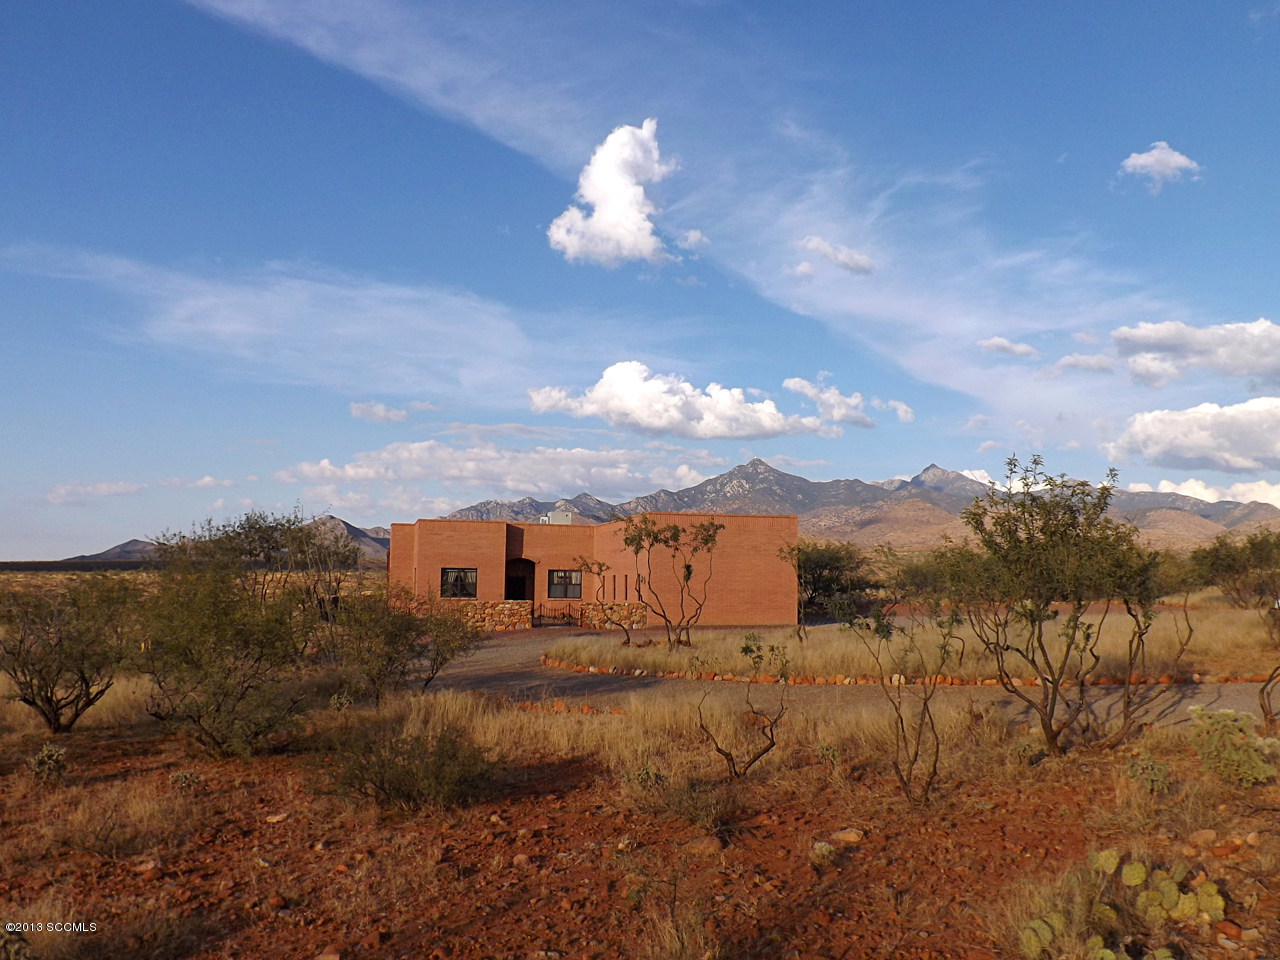 8.81 acres in Tubac, Arizona